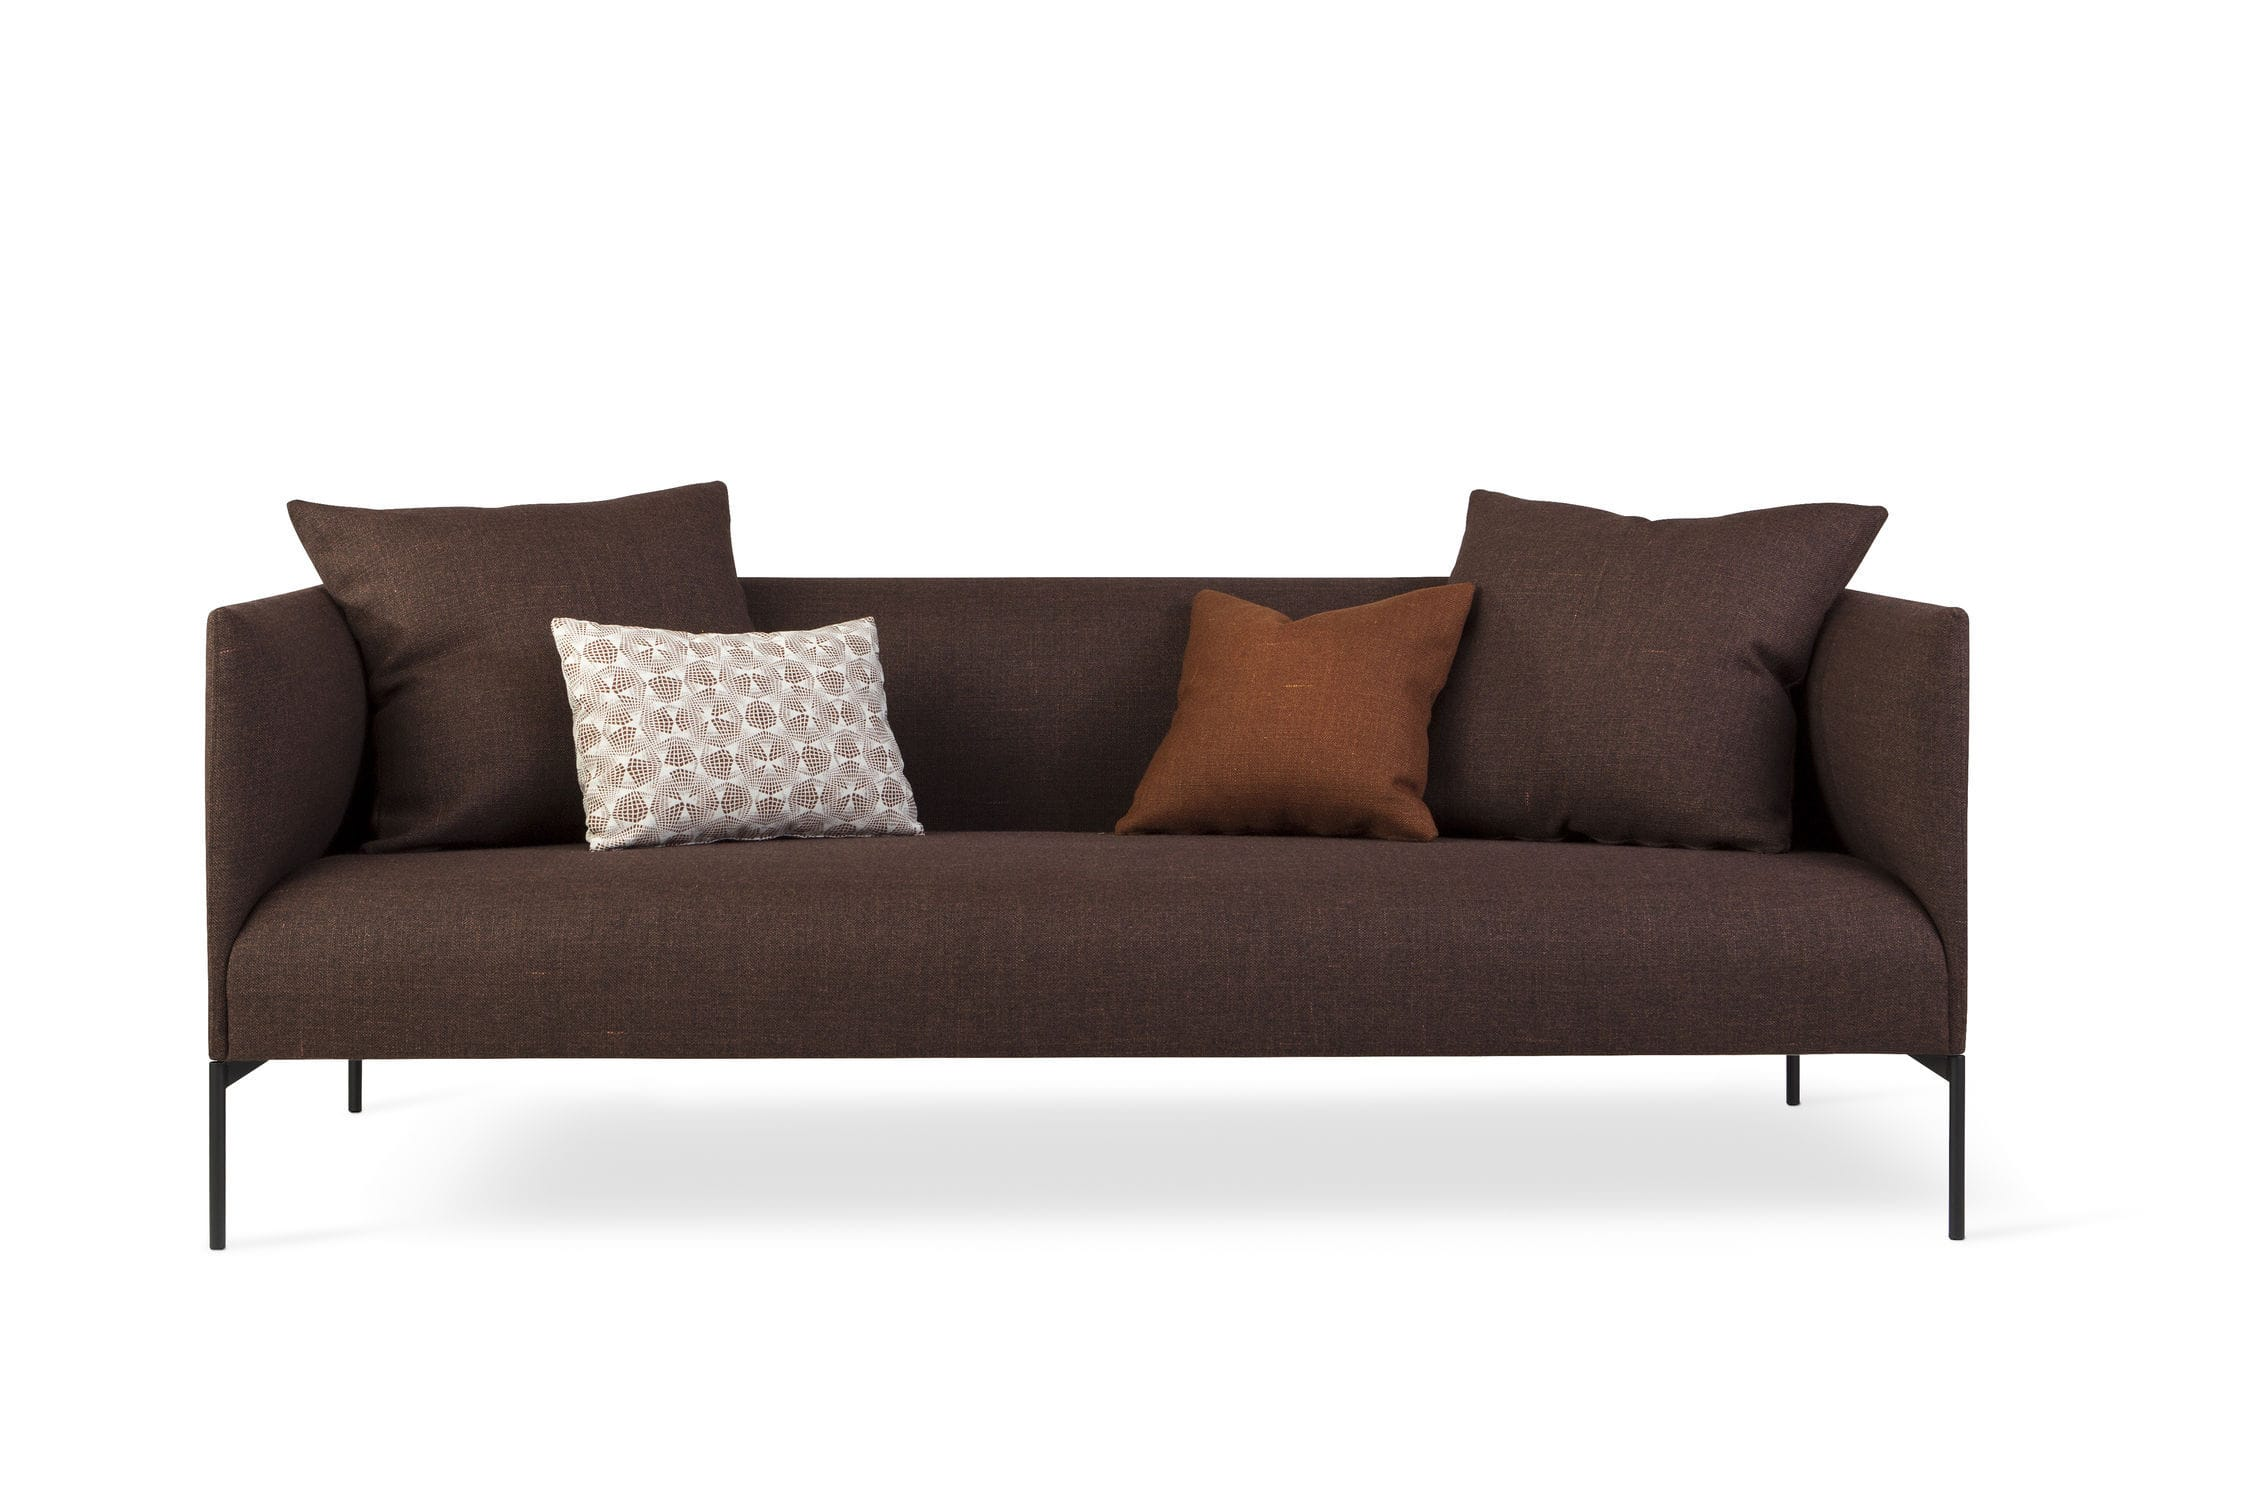 Contemporary Sofa Fabric 2 Person With Removable Cushion